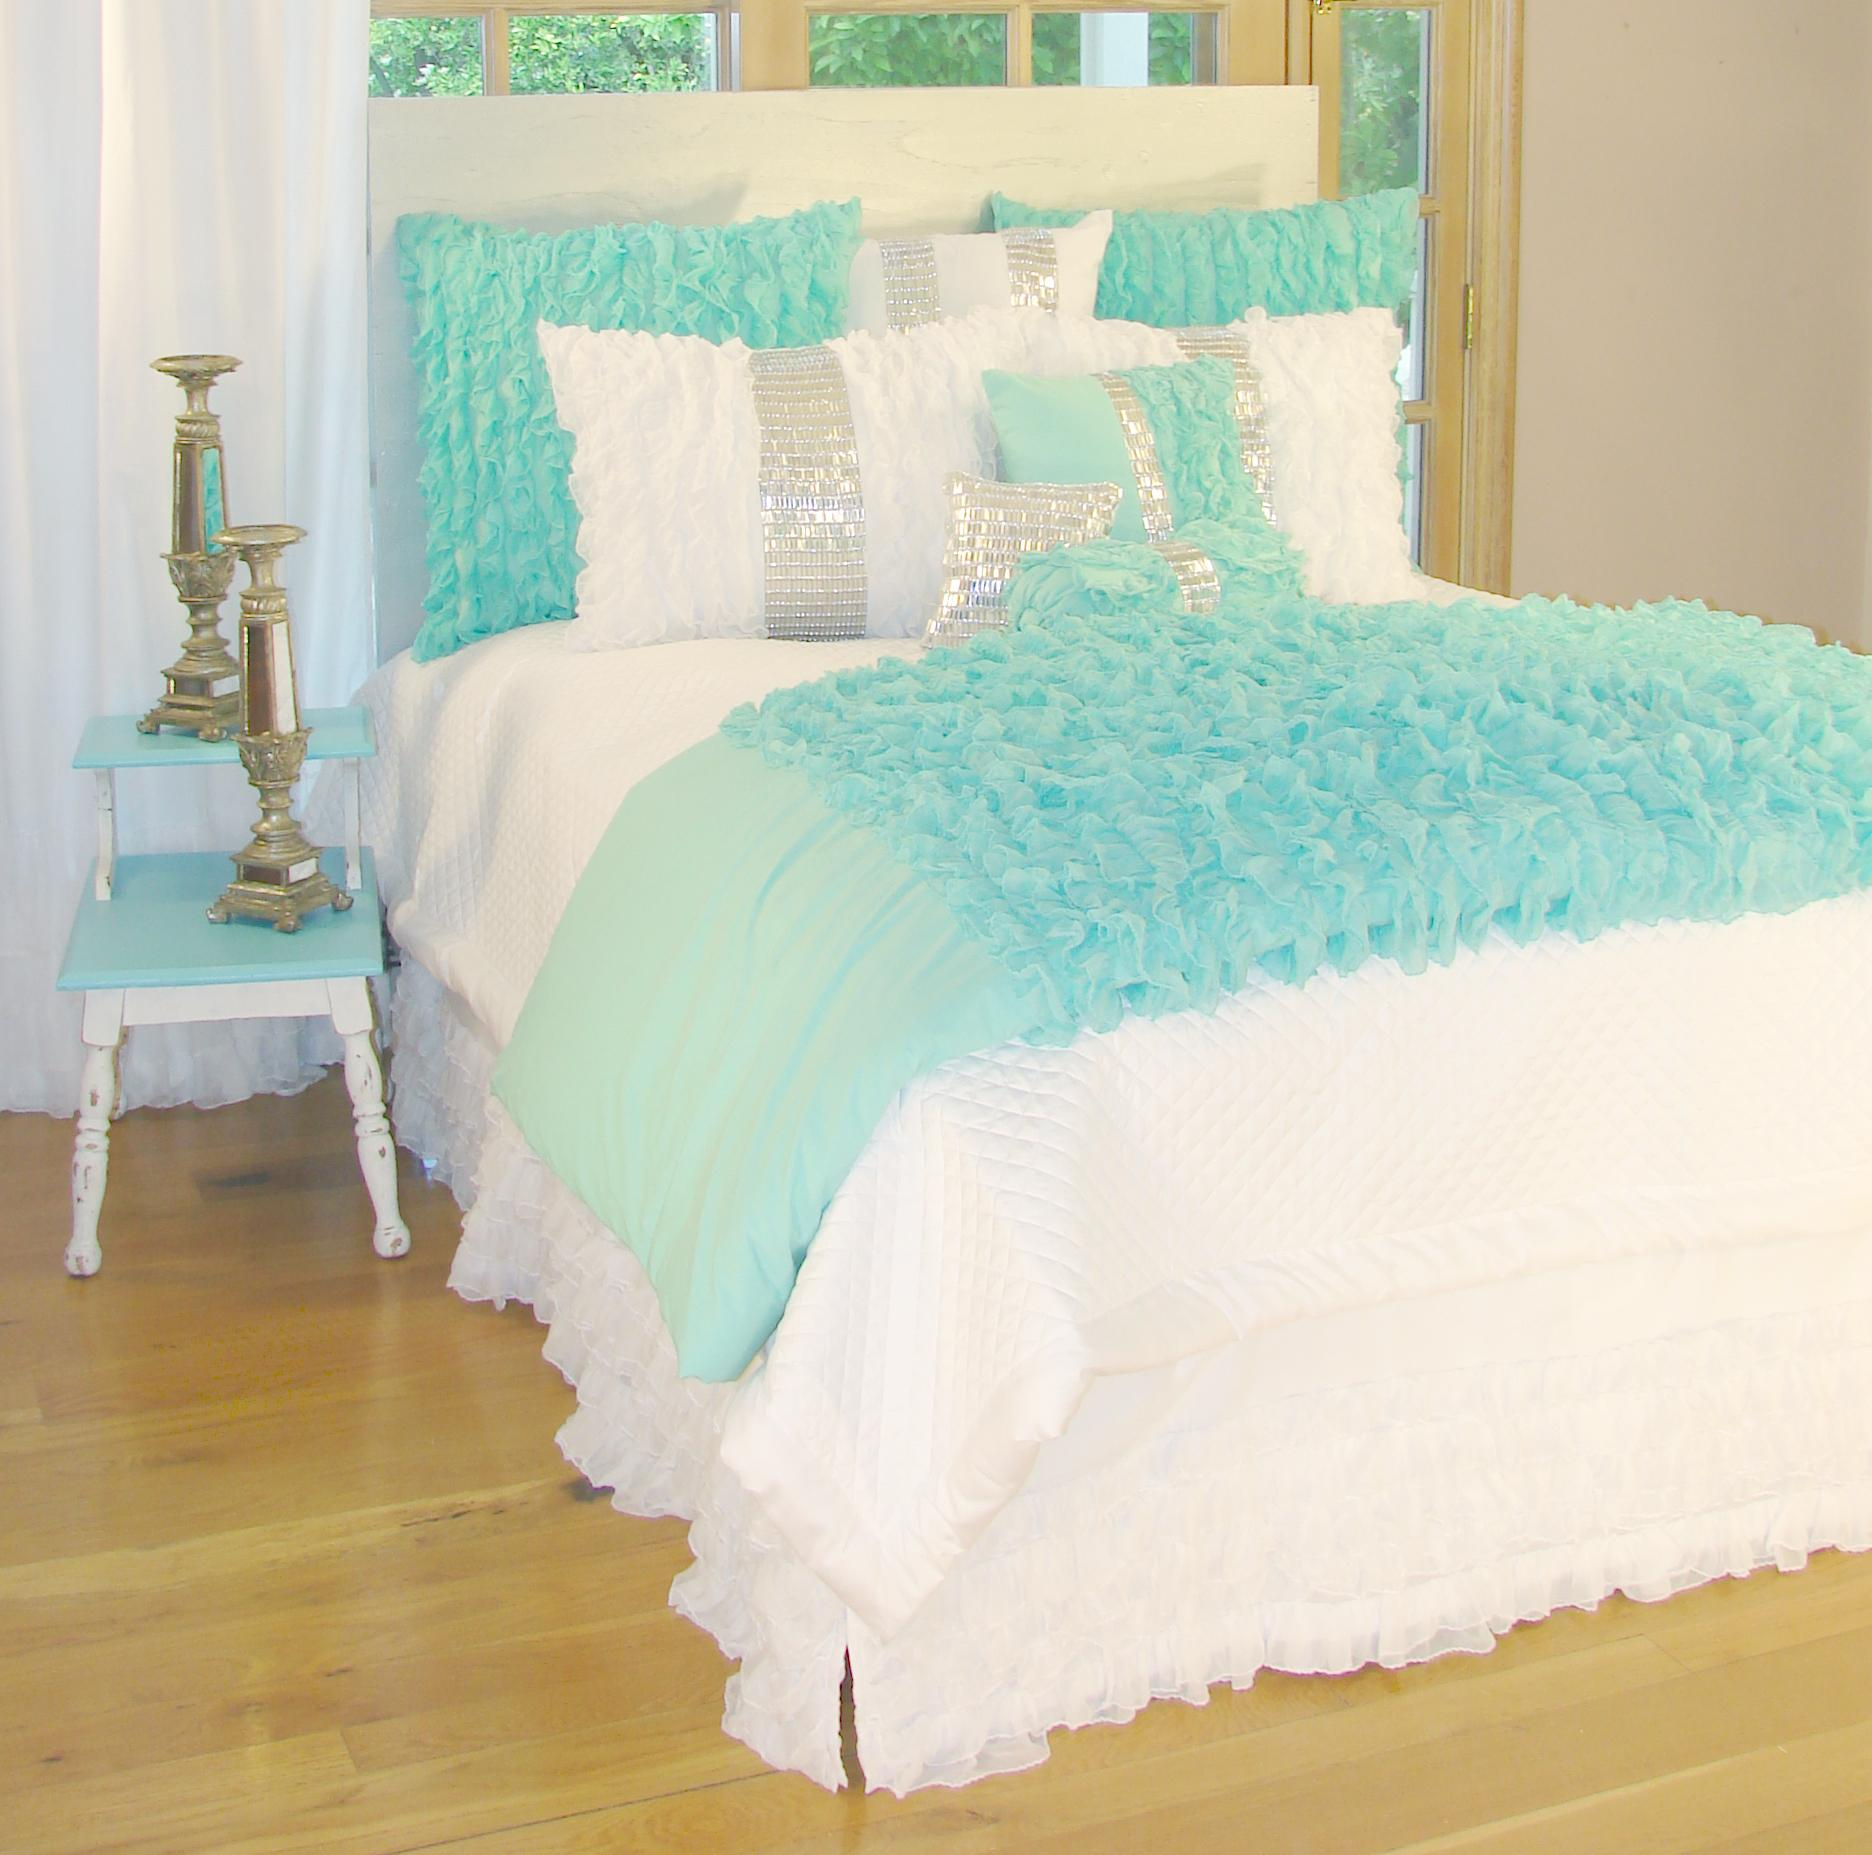 Glitz And Glamour Turquoise Bedding - Bedding Design Ideas